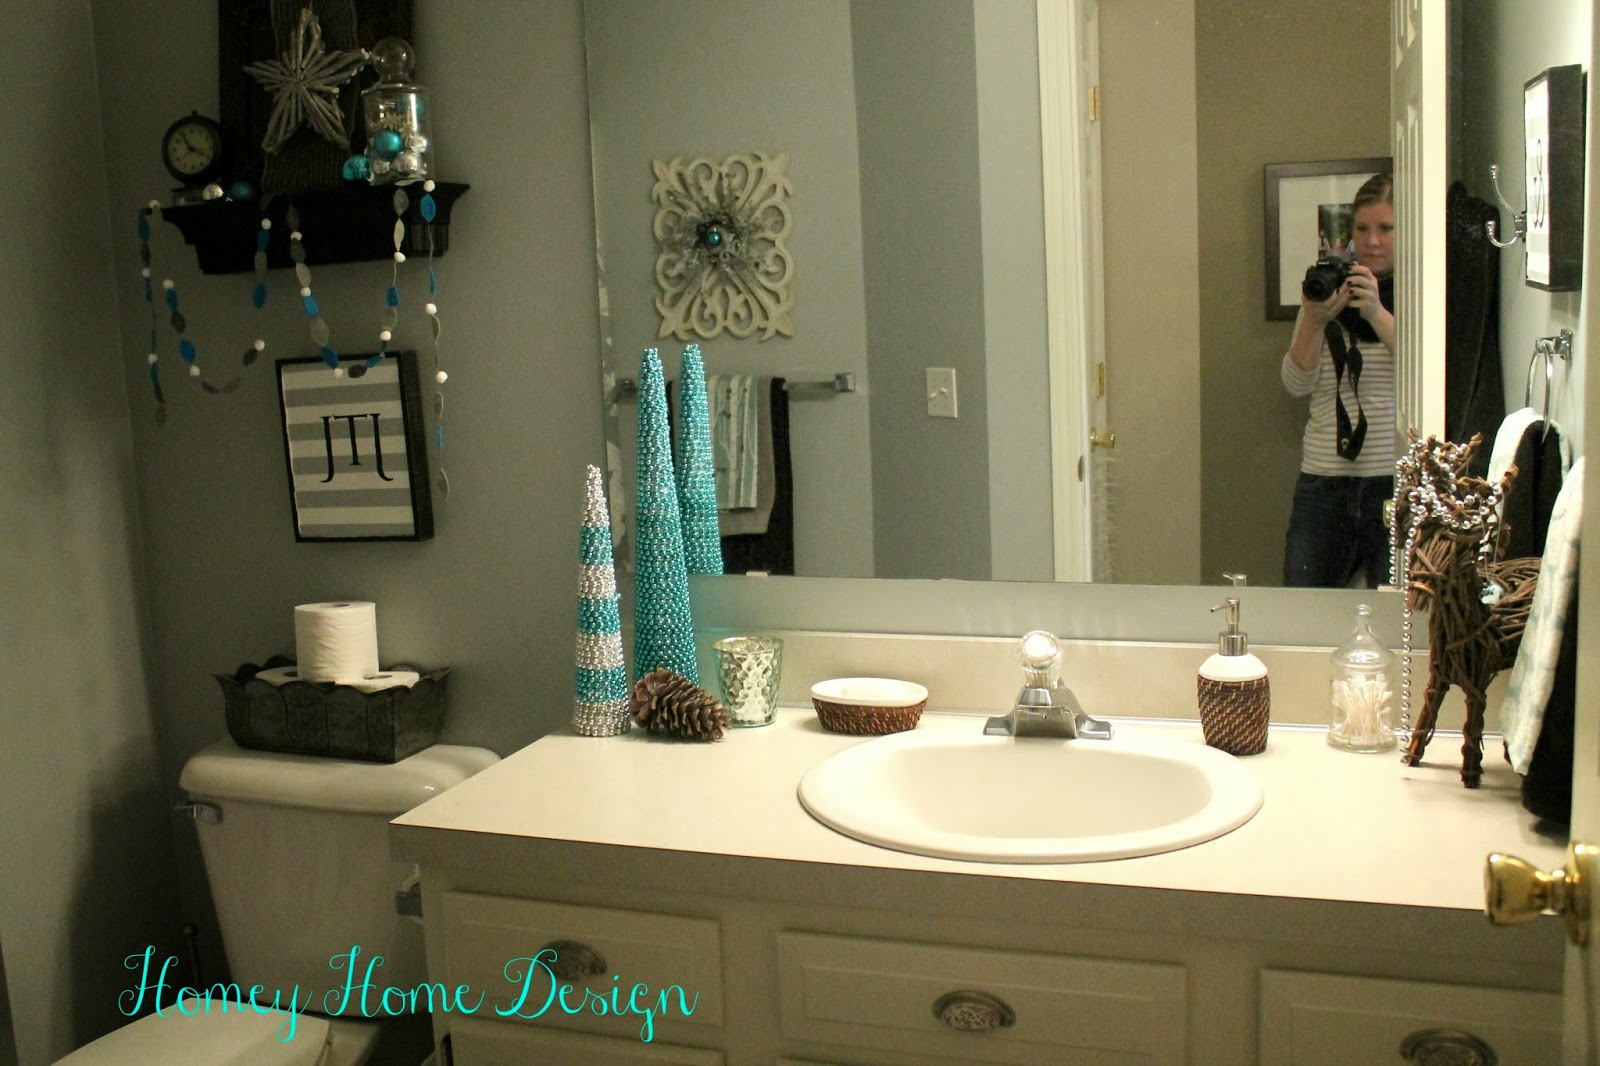 Homey home design bathroom christmas ideas for Bathroom decor ideas